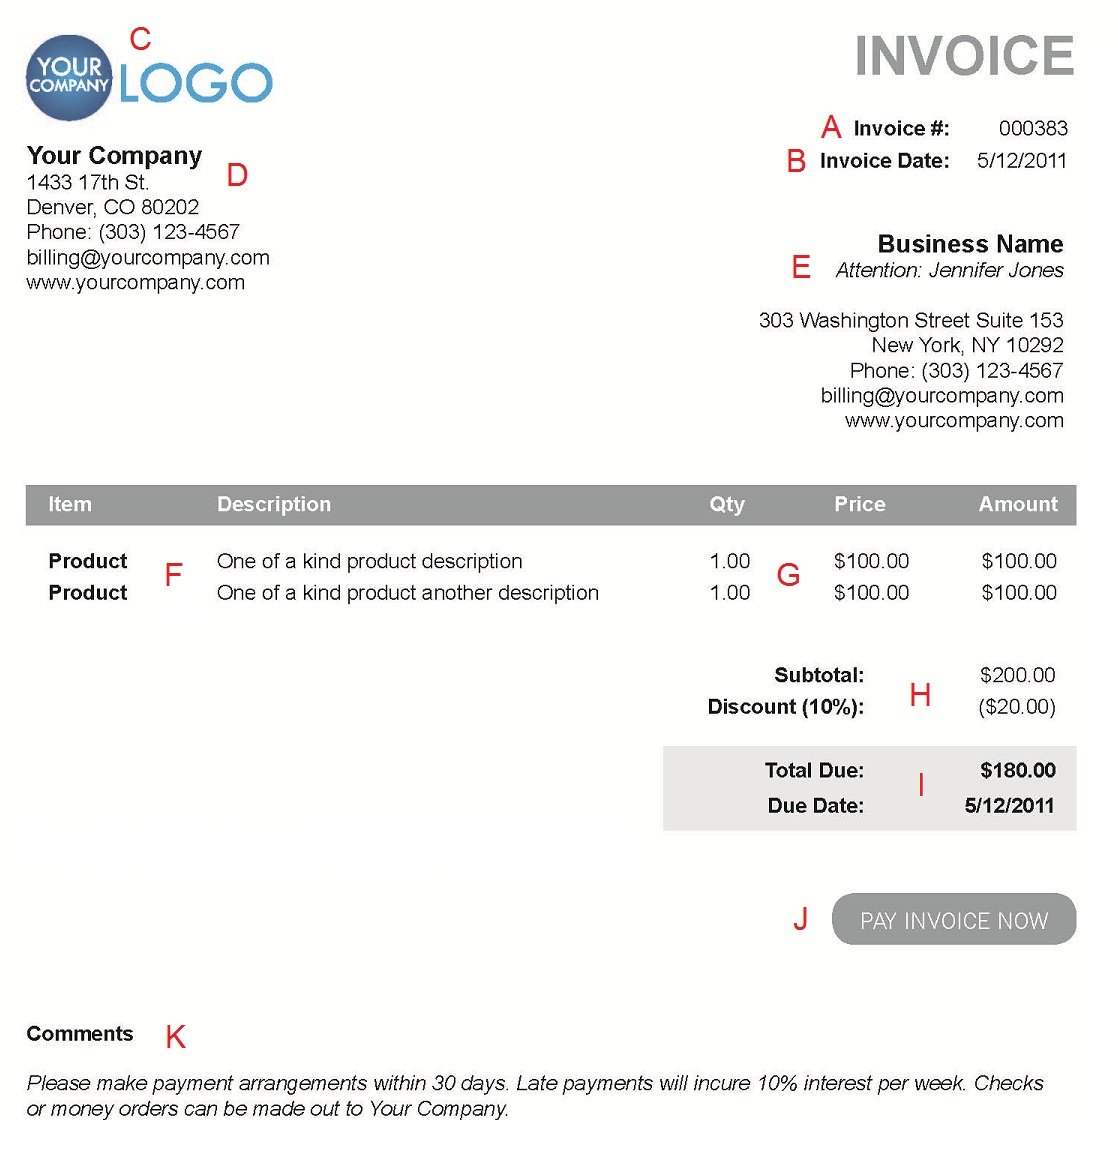 Floobydustus  Scenic The  Different Sections Of An Electronic Payment Invoice With Lovable A  With Captivating Downloadable Invoice Templates Also Invoice And Receipt Template In Addition Invoice You And Invoice Template Nz As Well As How Long To Keep Invoices Additionally Invoice Template Word  Free Download From Paysimplecom With Floobydustus  Lovable The  Different Sections Of An Electronic Payment Invoice With Captivating A  And Scenic Downloadable Invoice Templates Also Invoice And Receipt Template In Addition Invoice You From Paysimplecom